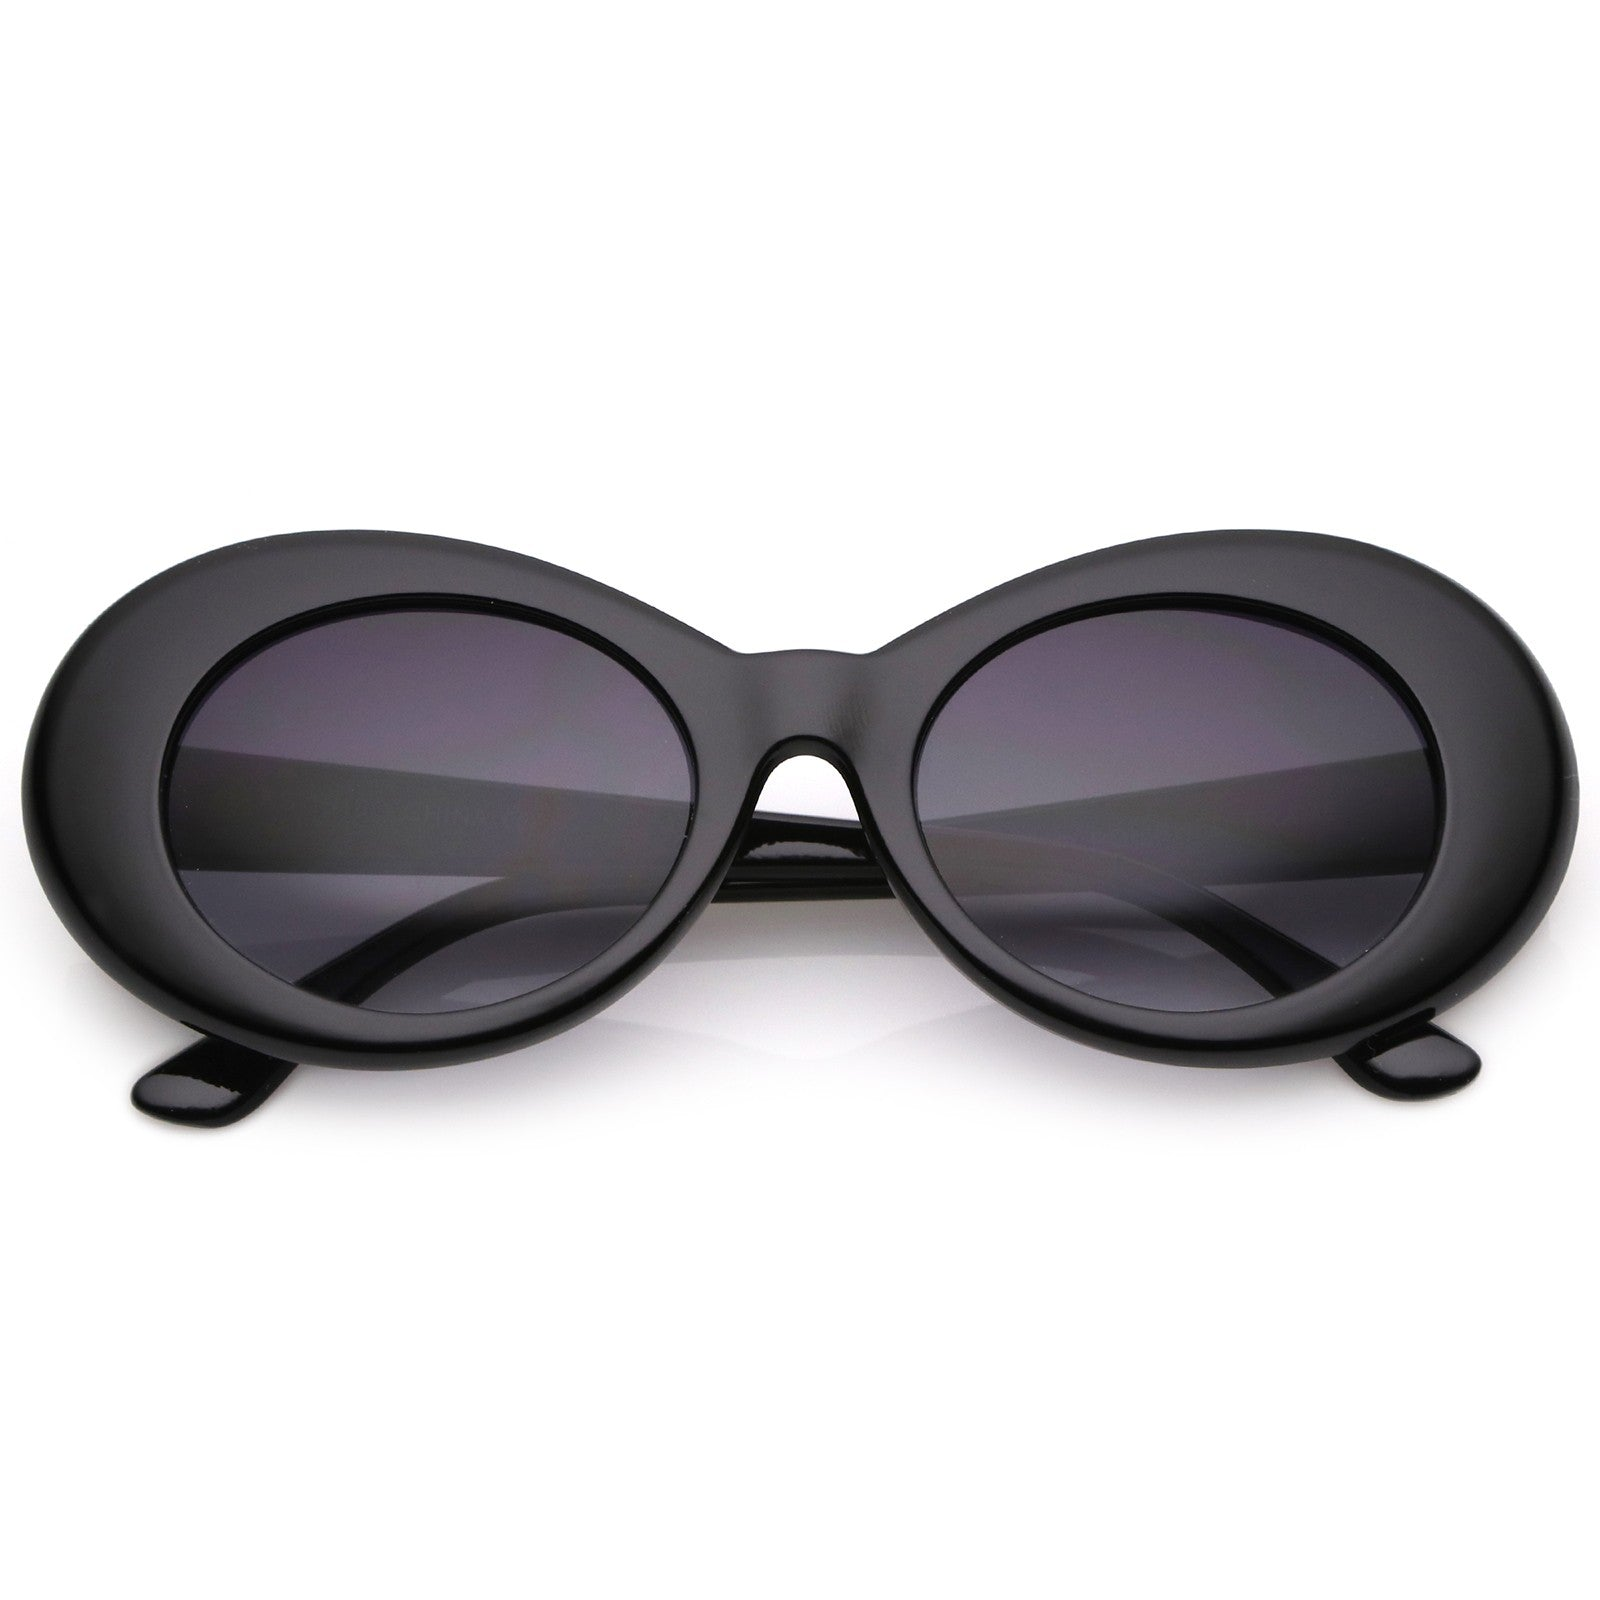 Retro Oval Sunglasses With Tapered Arms Neutral Colored Gradient Lens 50mm (Black / Lavender)